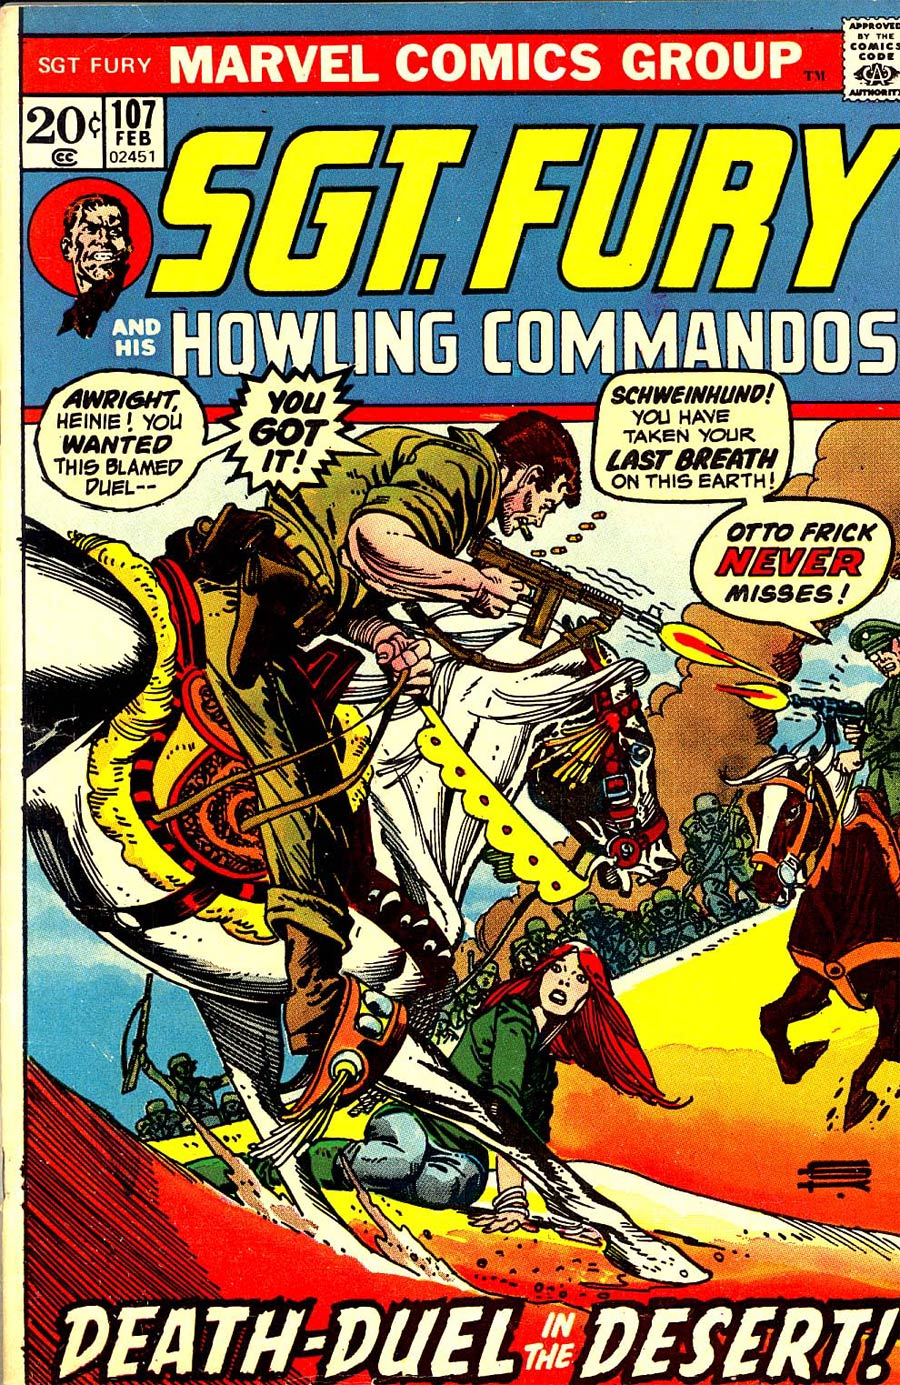 Sgt. Fury & His Howling Commandos #107